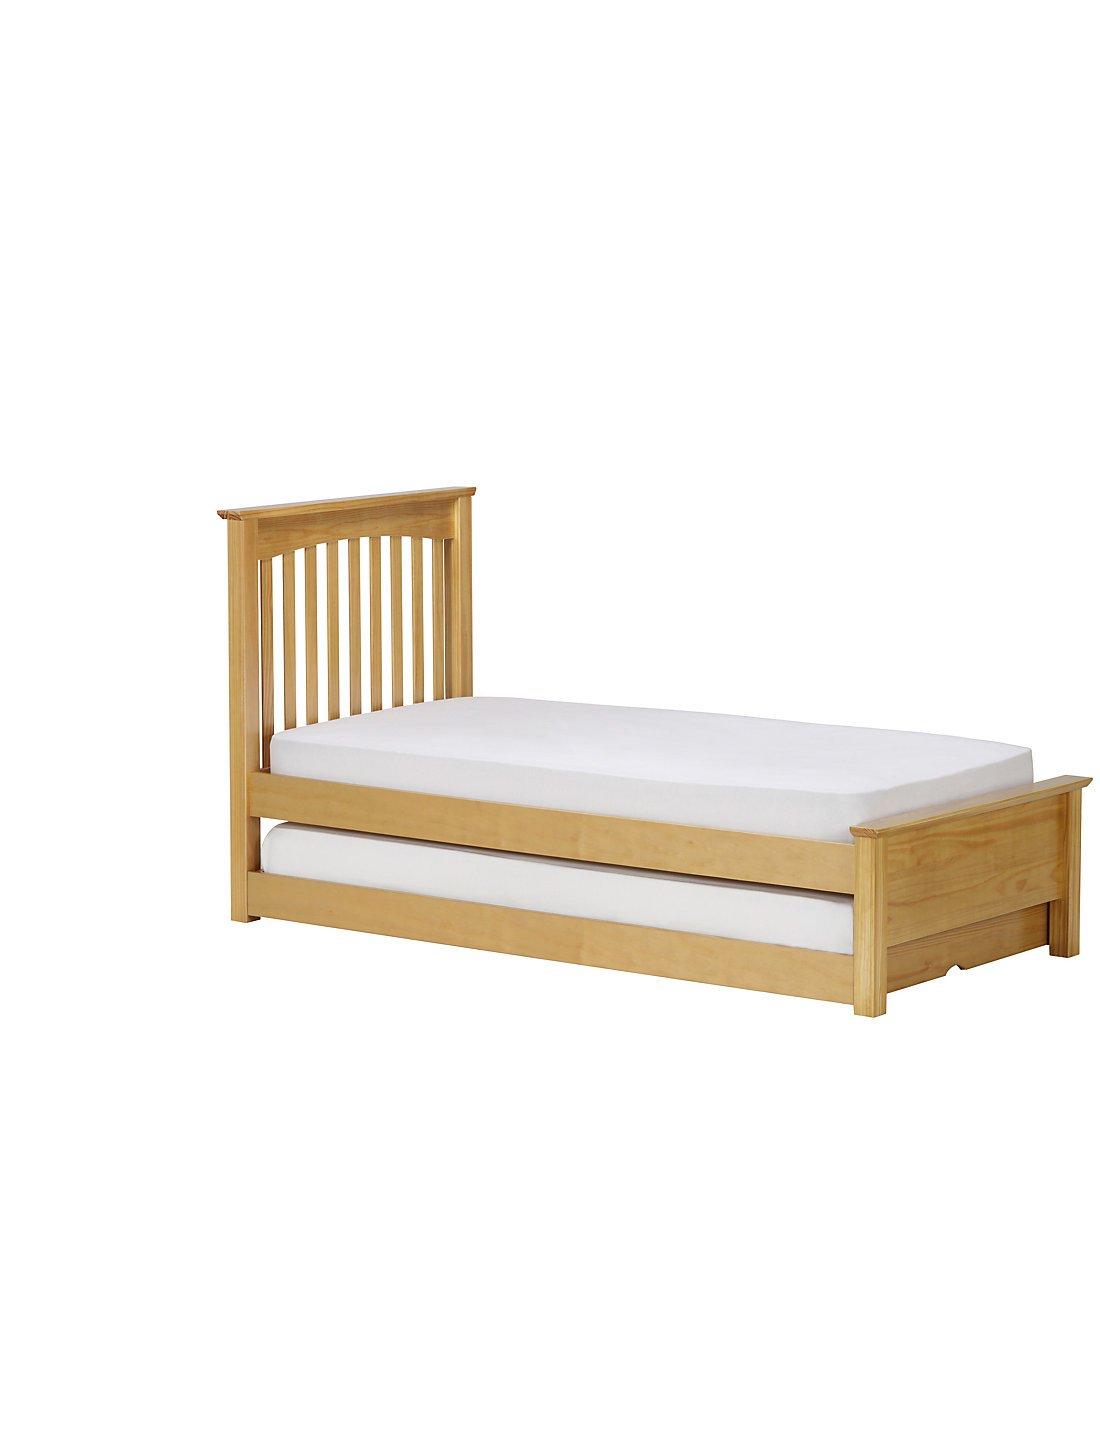 Hideaway Guest Bed Hastings Natural Pine Childrens Guest Bed Ms